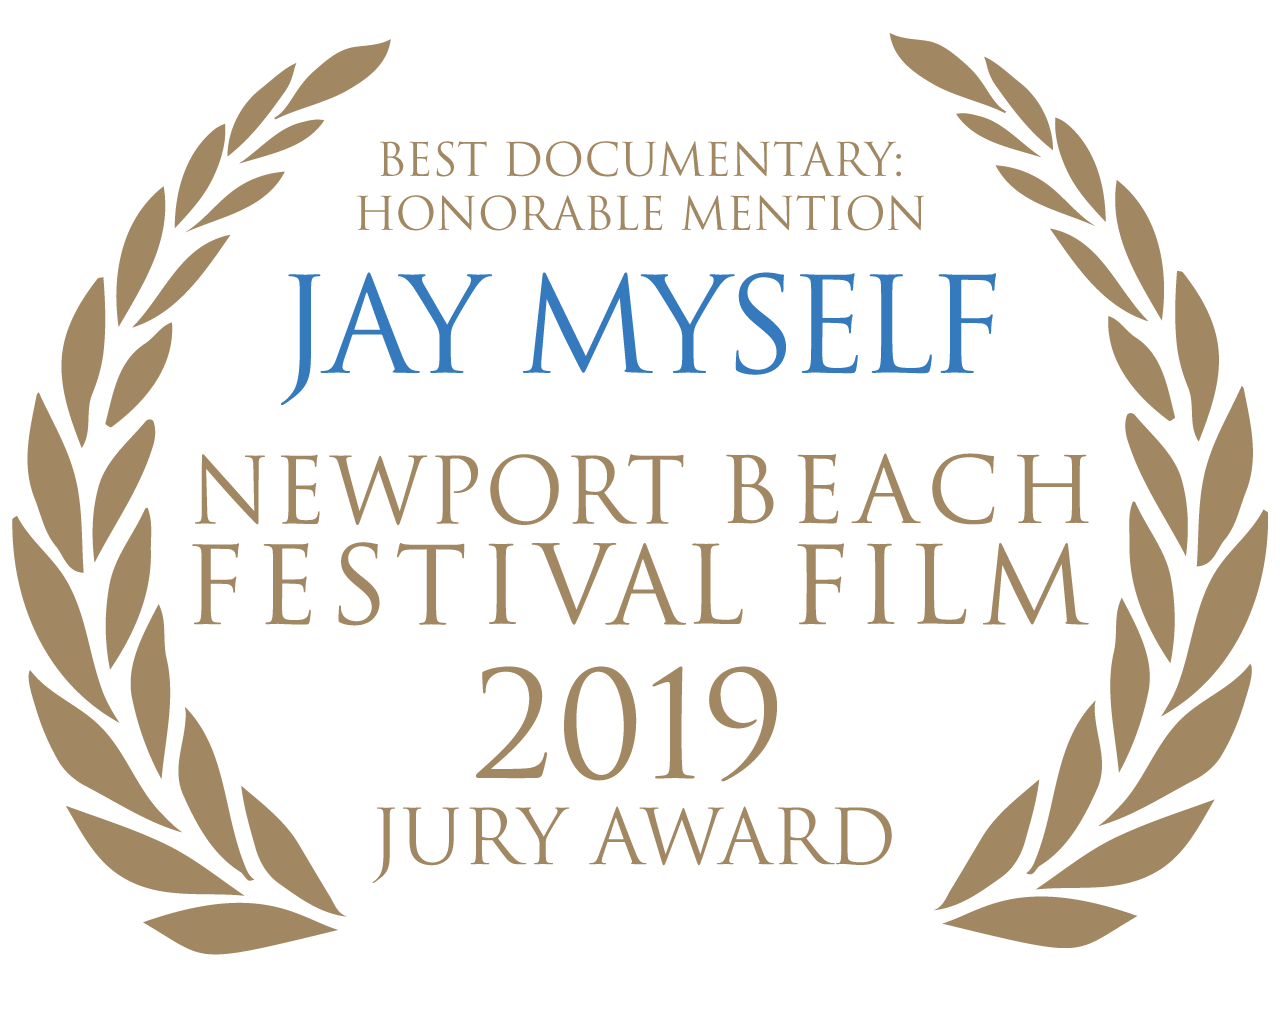 Best-Documentary-Honorable-Mention-Jay-Myself